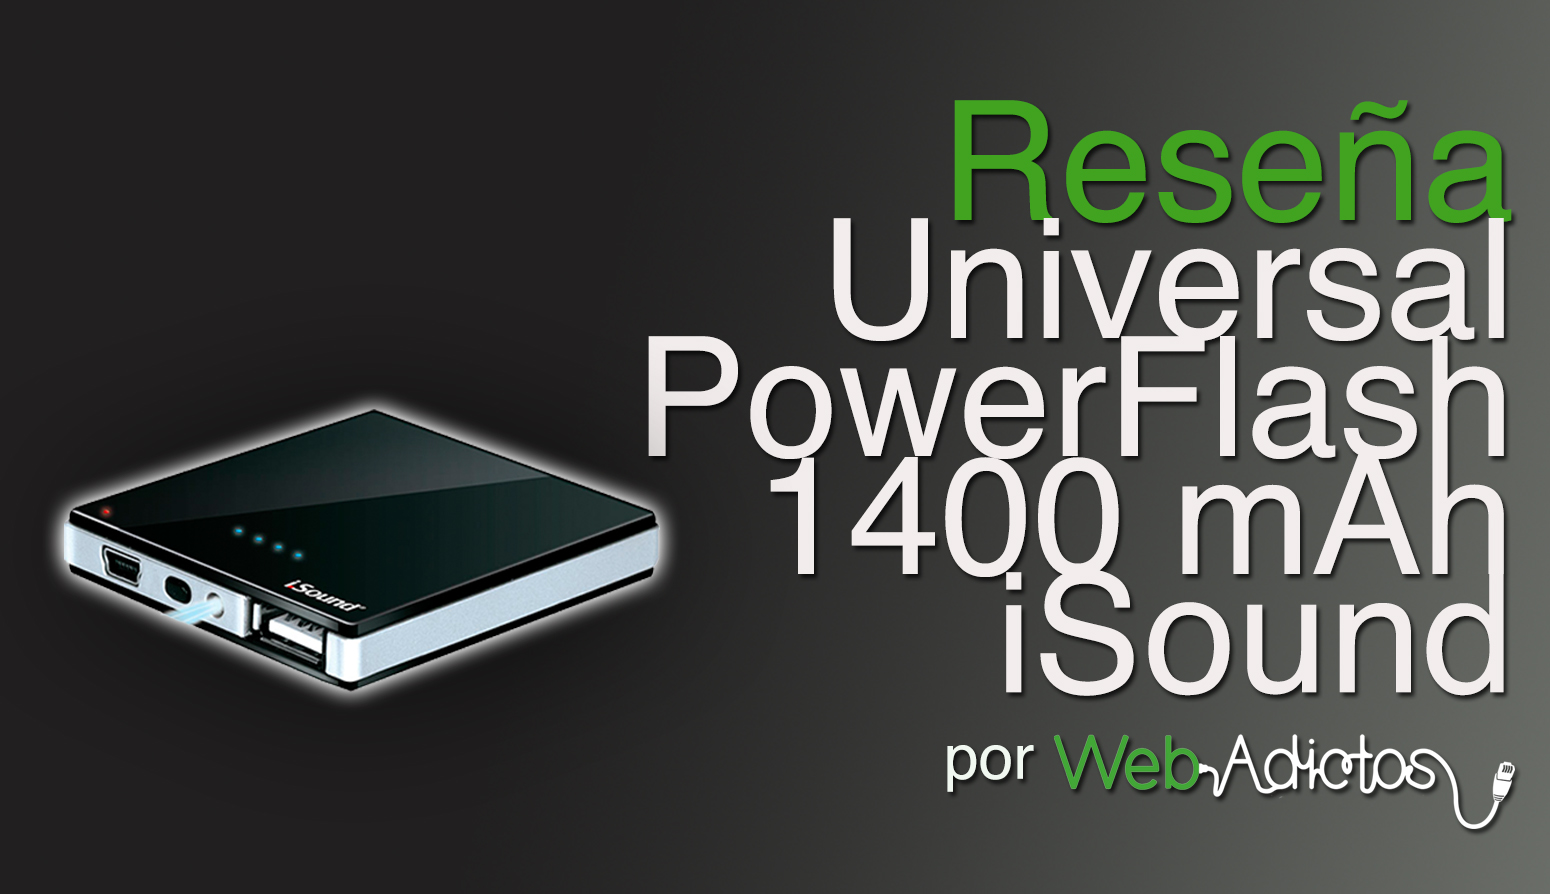 Universal PowerFlash Backup Battery de iSound, una batería de respaldo para tus dispositivos